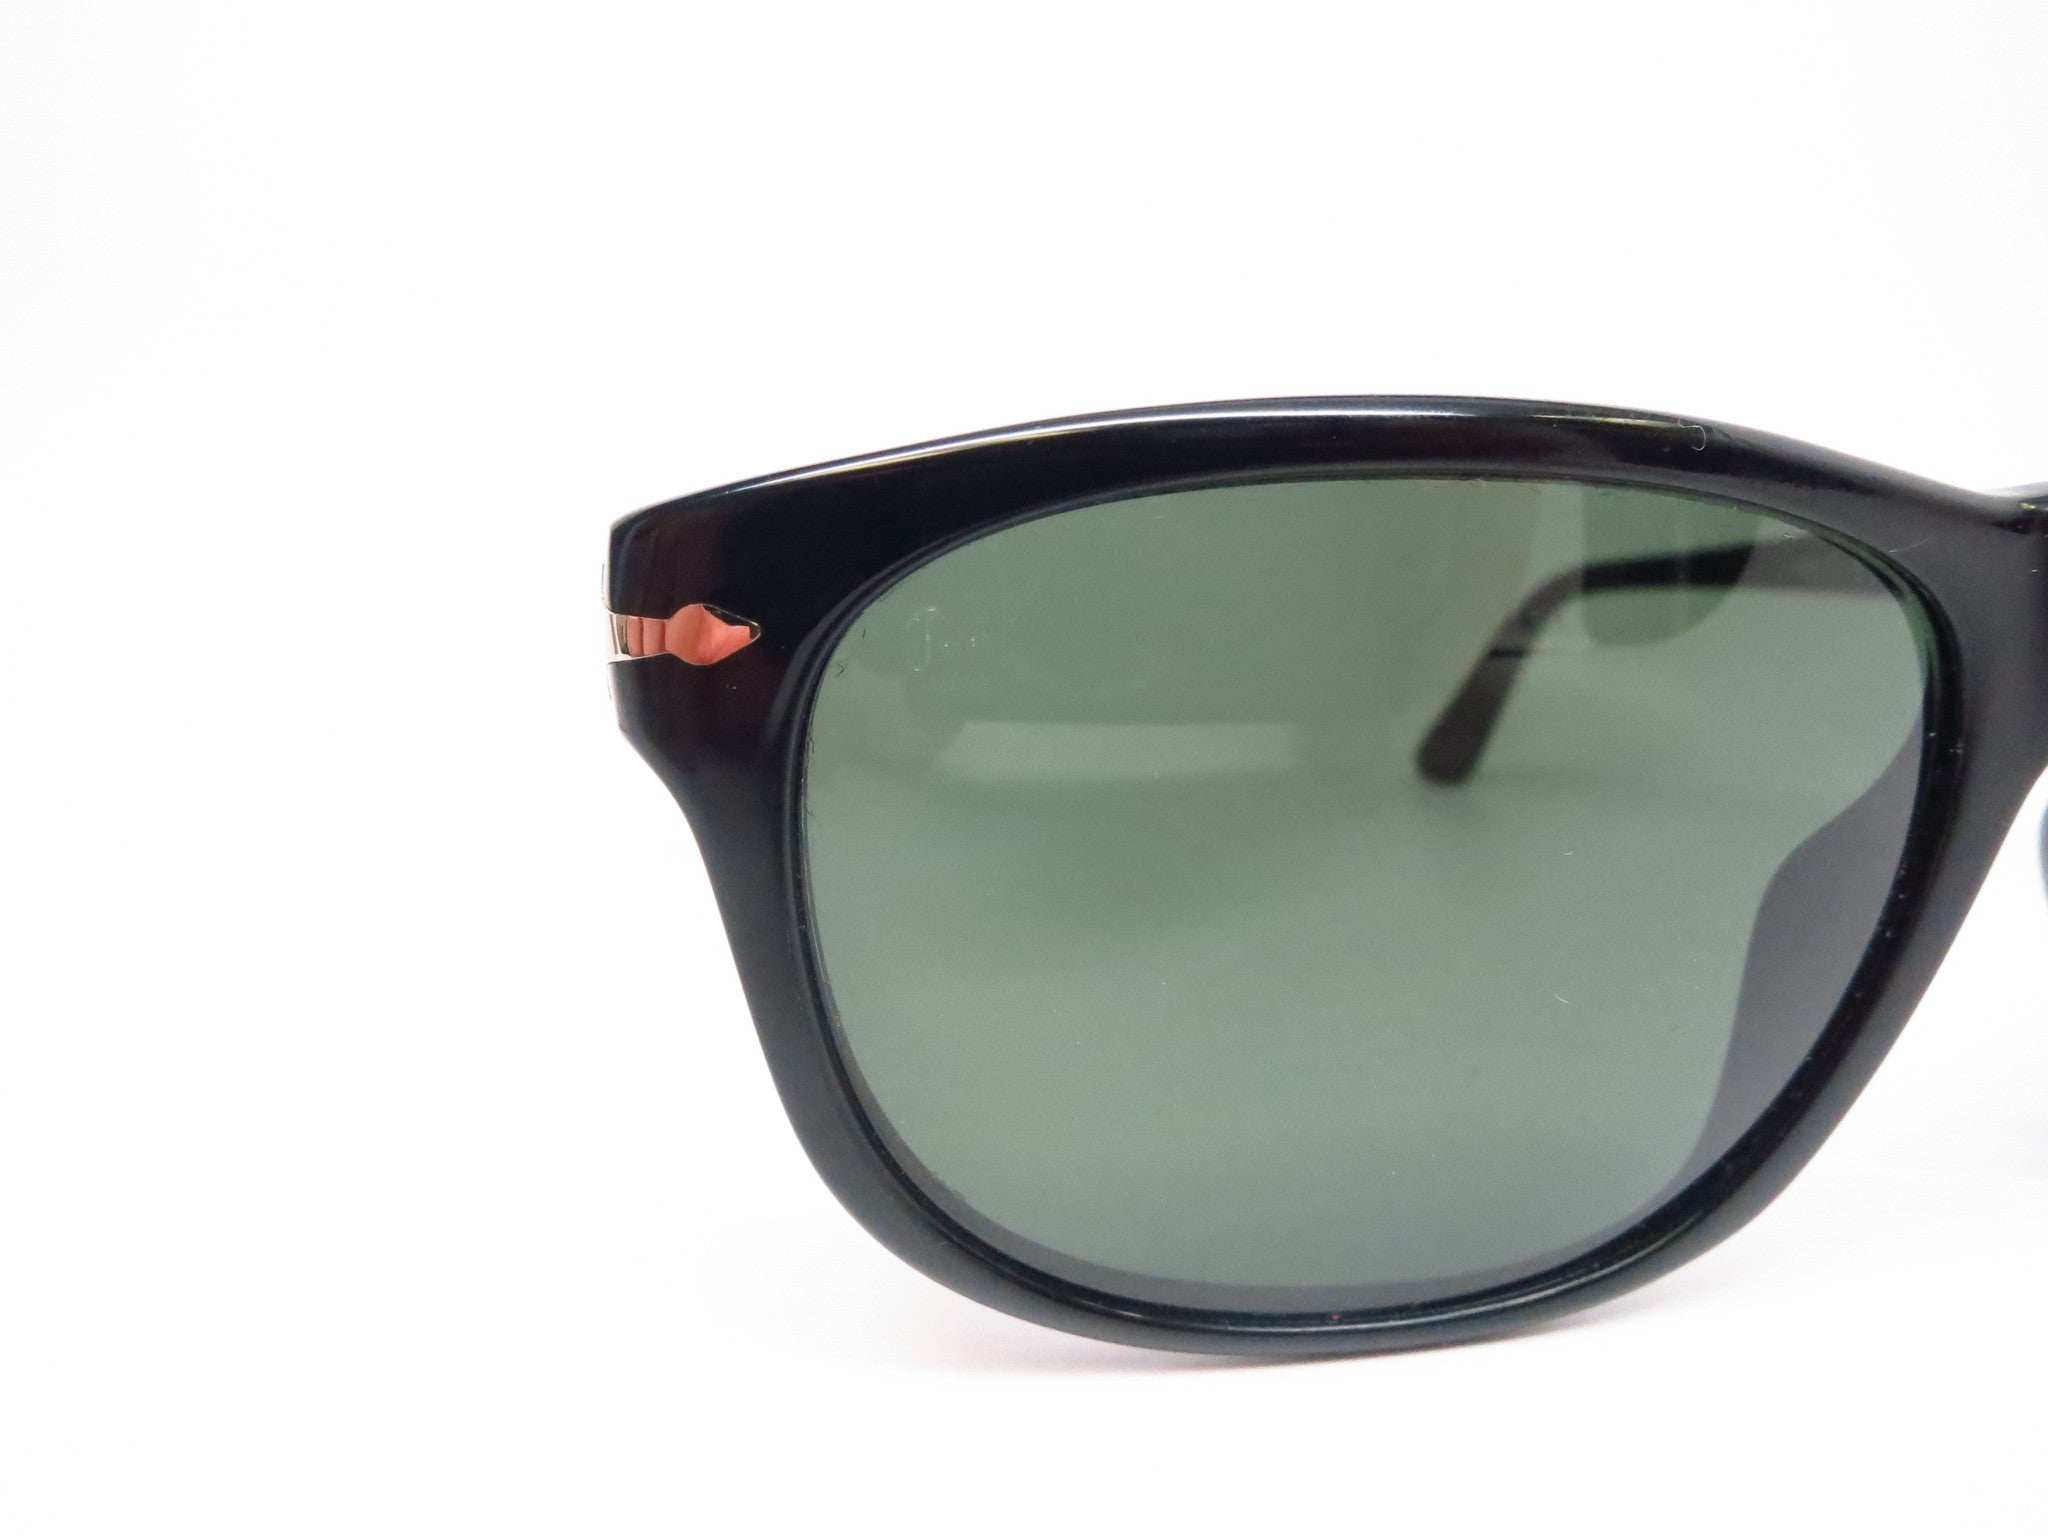 6aed6afae24c ... Persol PO 2989-S 95/31 Black Sunglasses - Eye Heart Shades - Persol ...